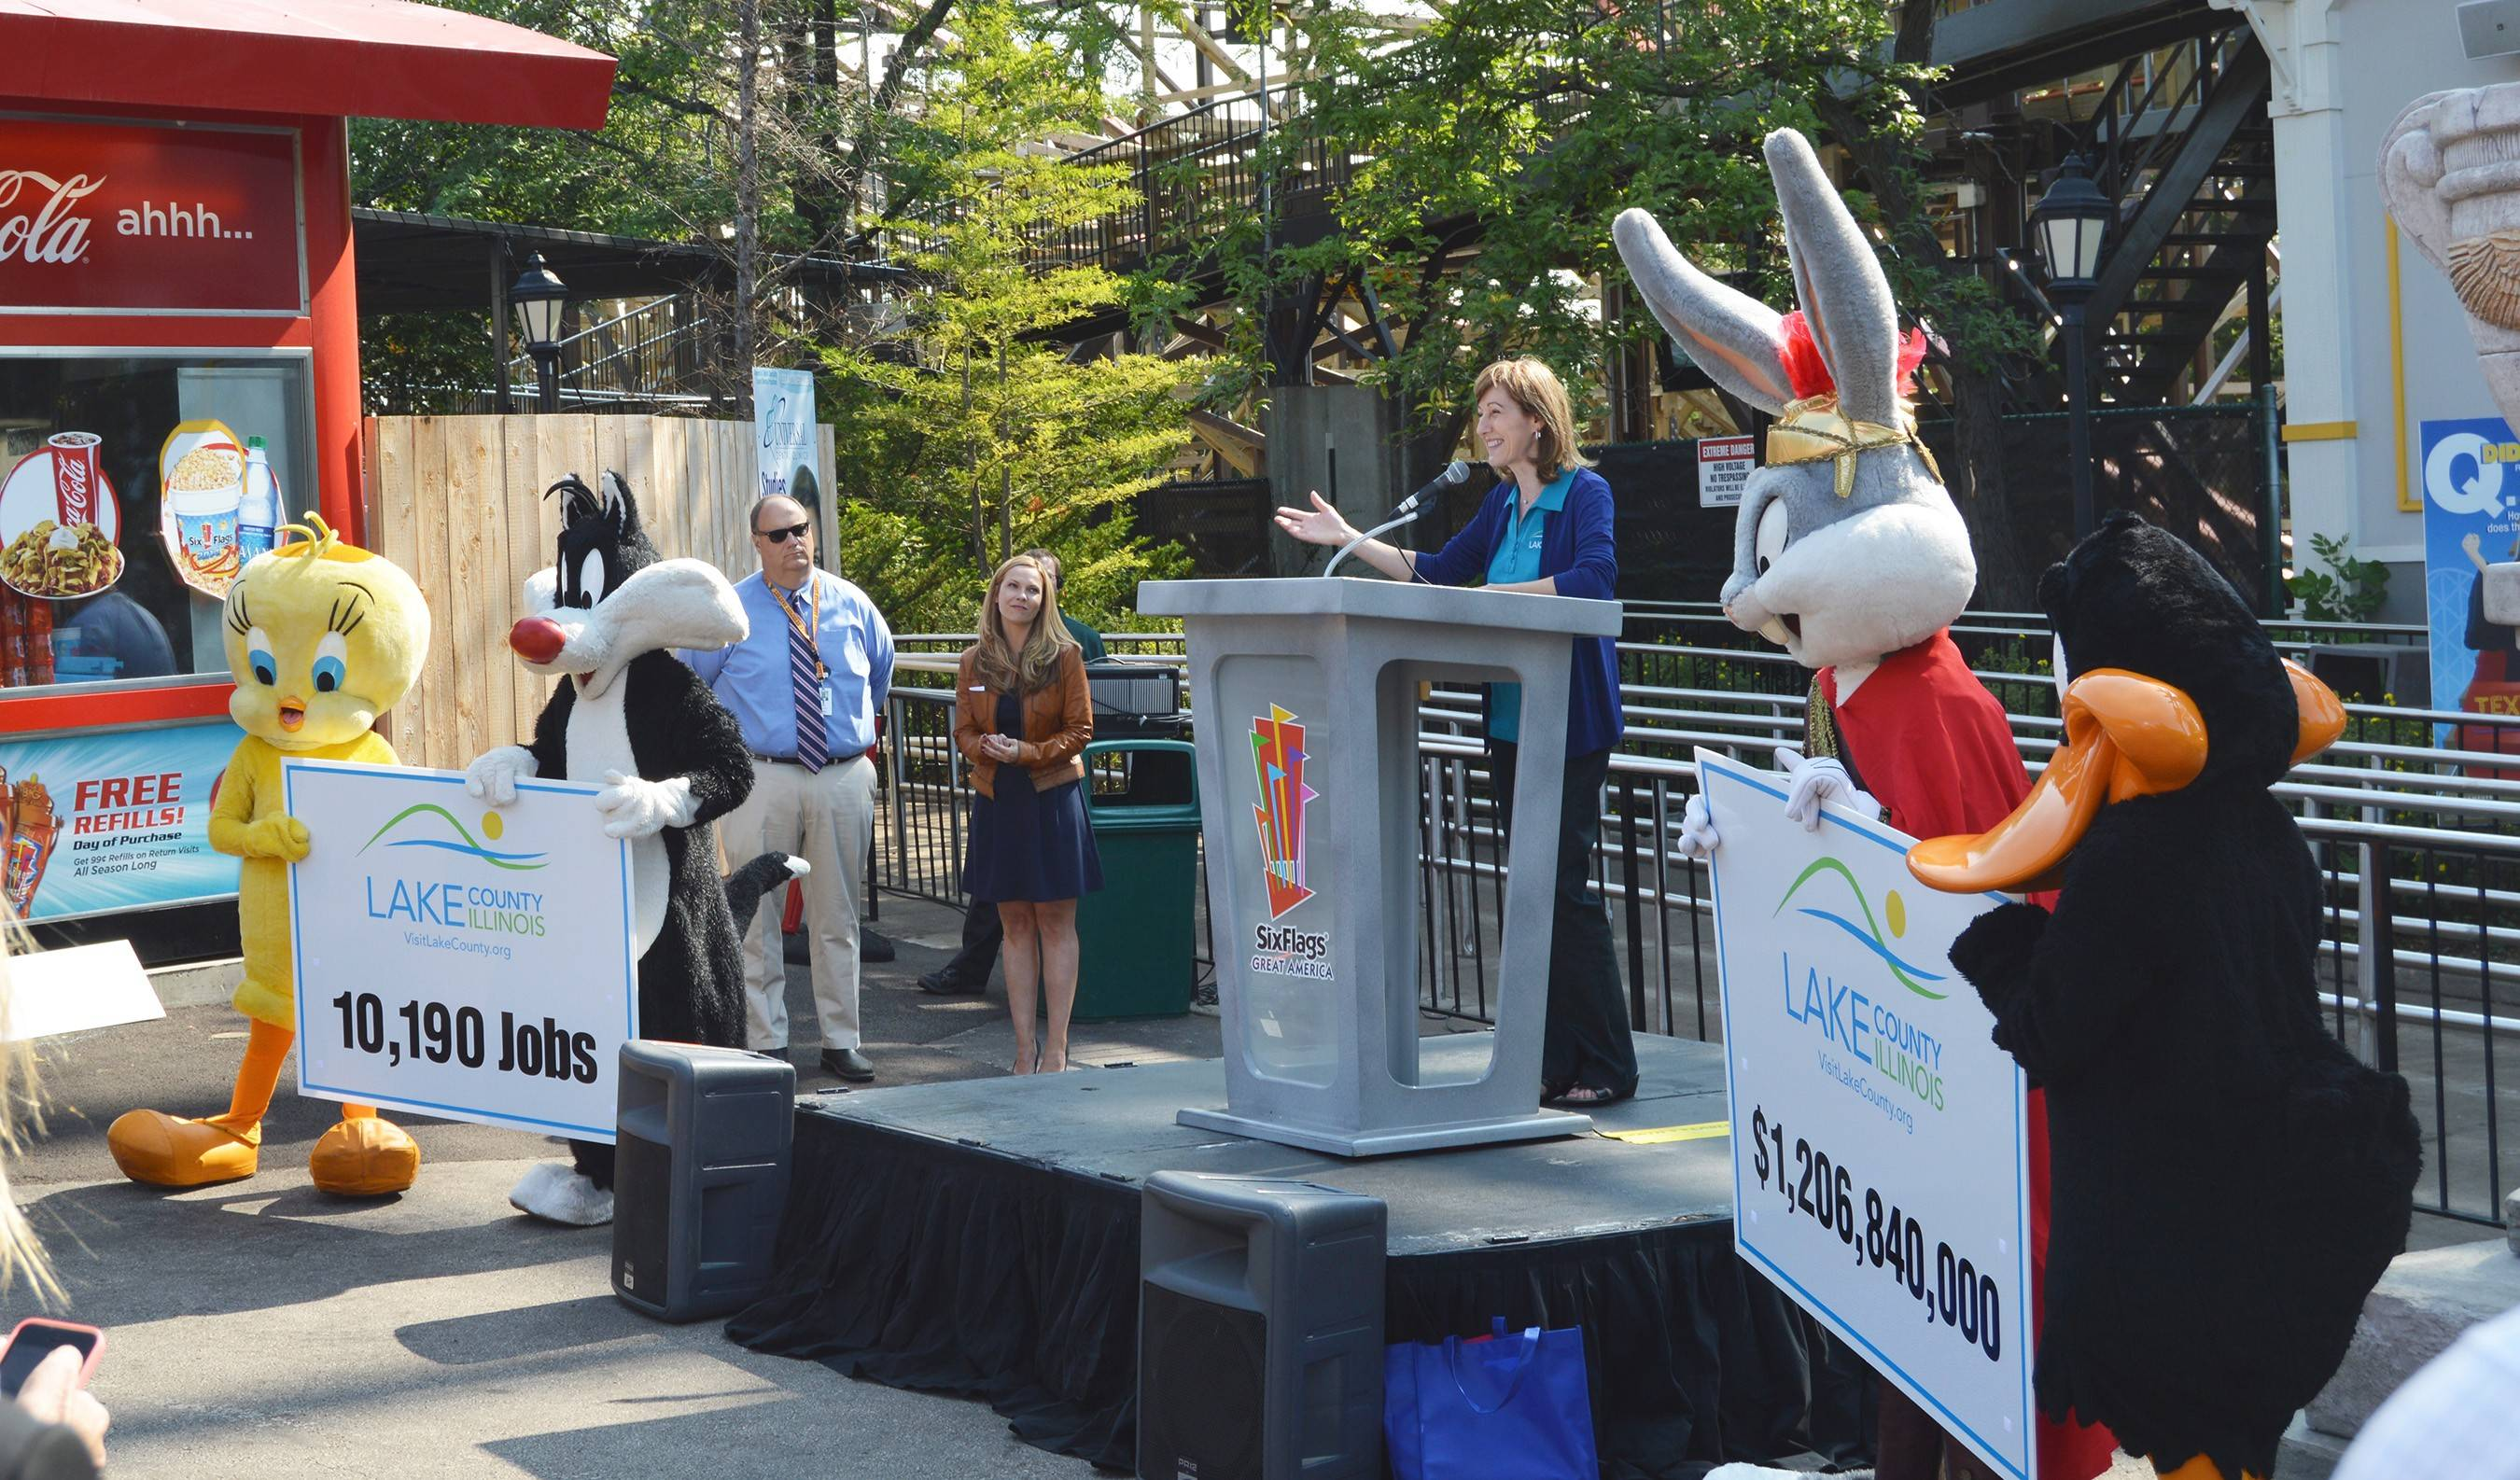 Maureen Riedy, president of Visit Lake County, discusses tourism numbers during an event Monday at Six Flags Great America in Gurnee.